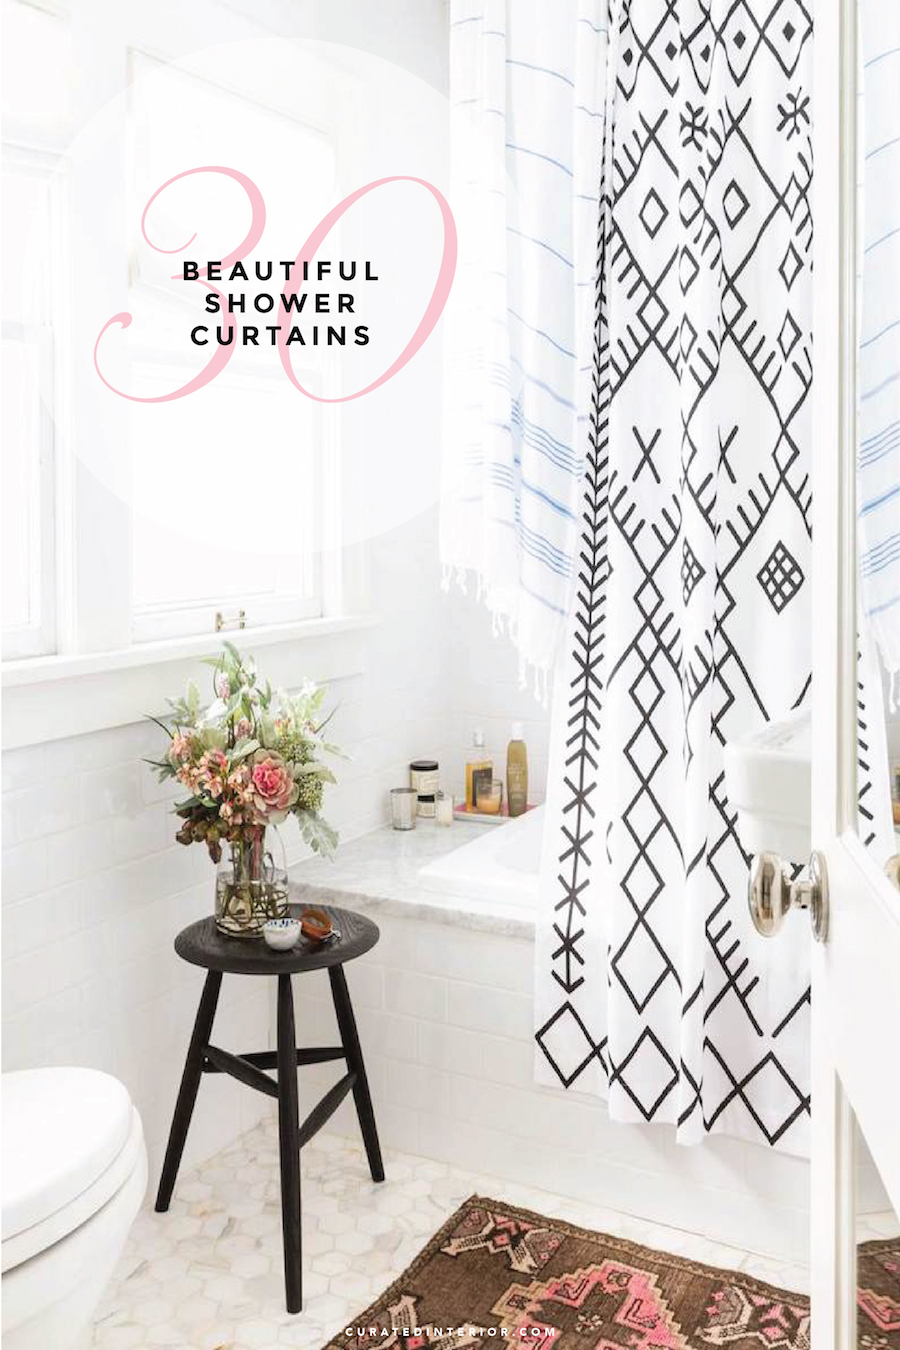 Beau Shower Curtains We Love!